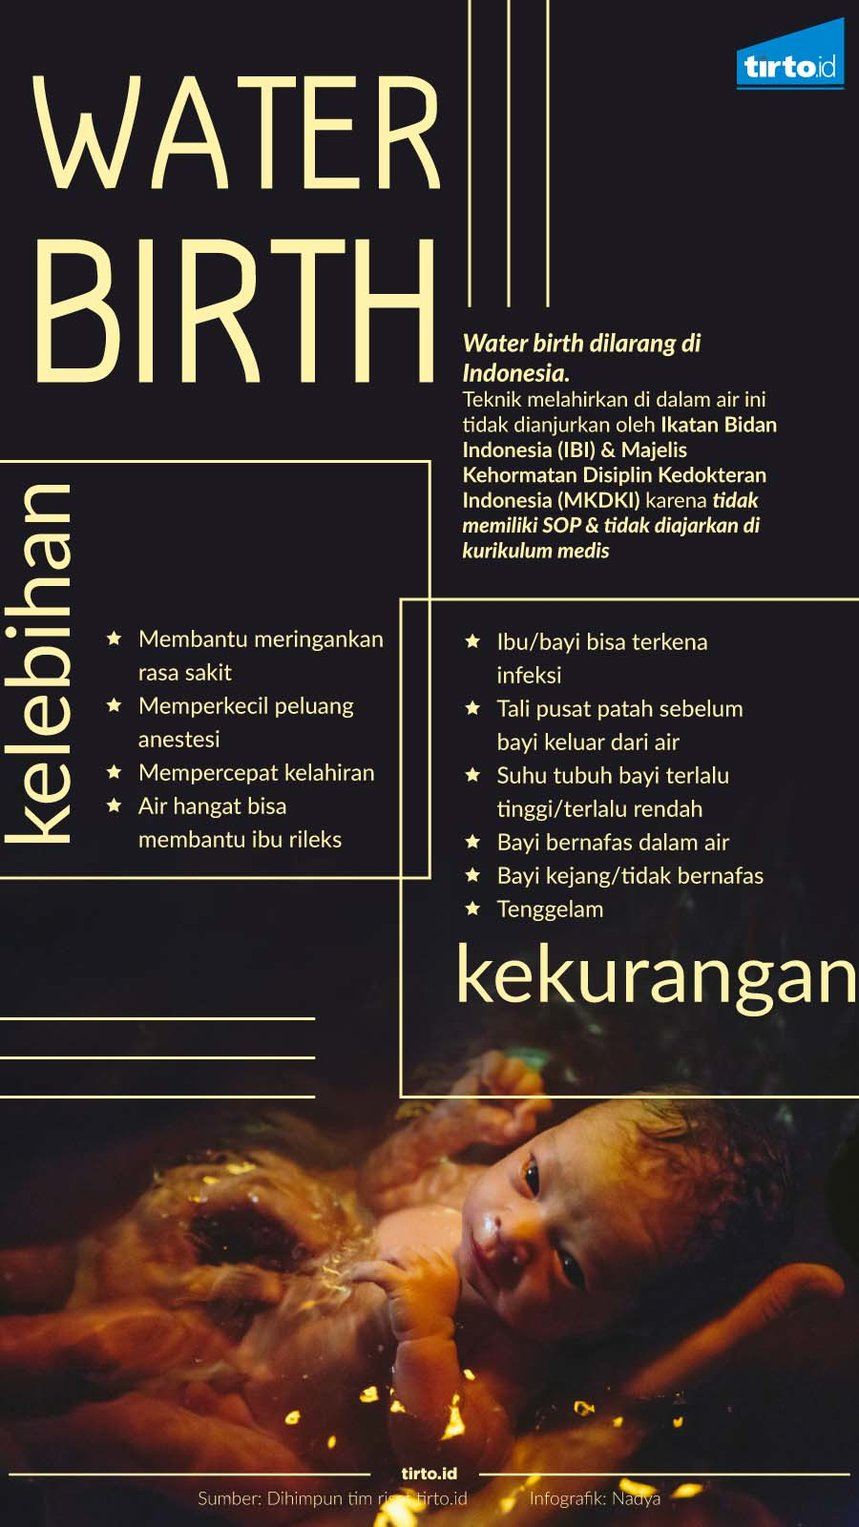 Infografik water birth